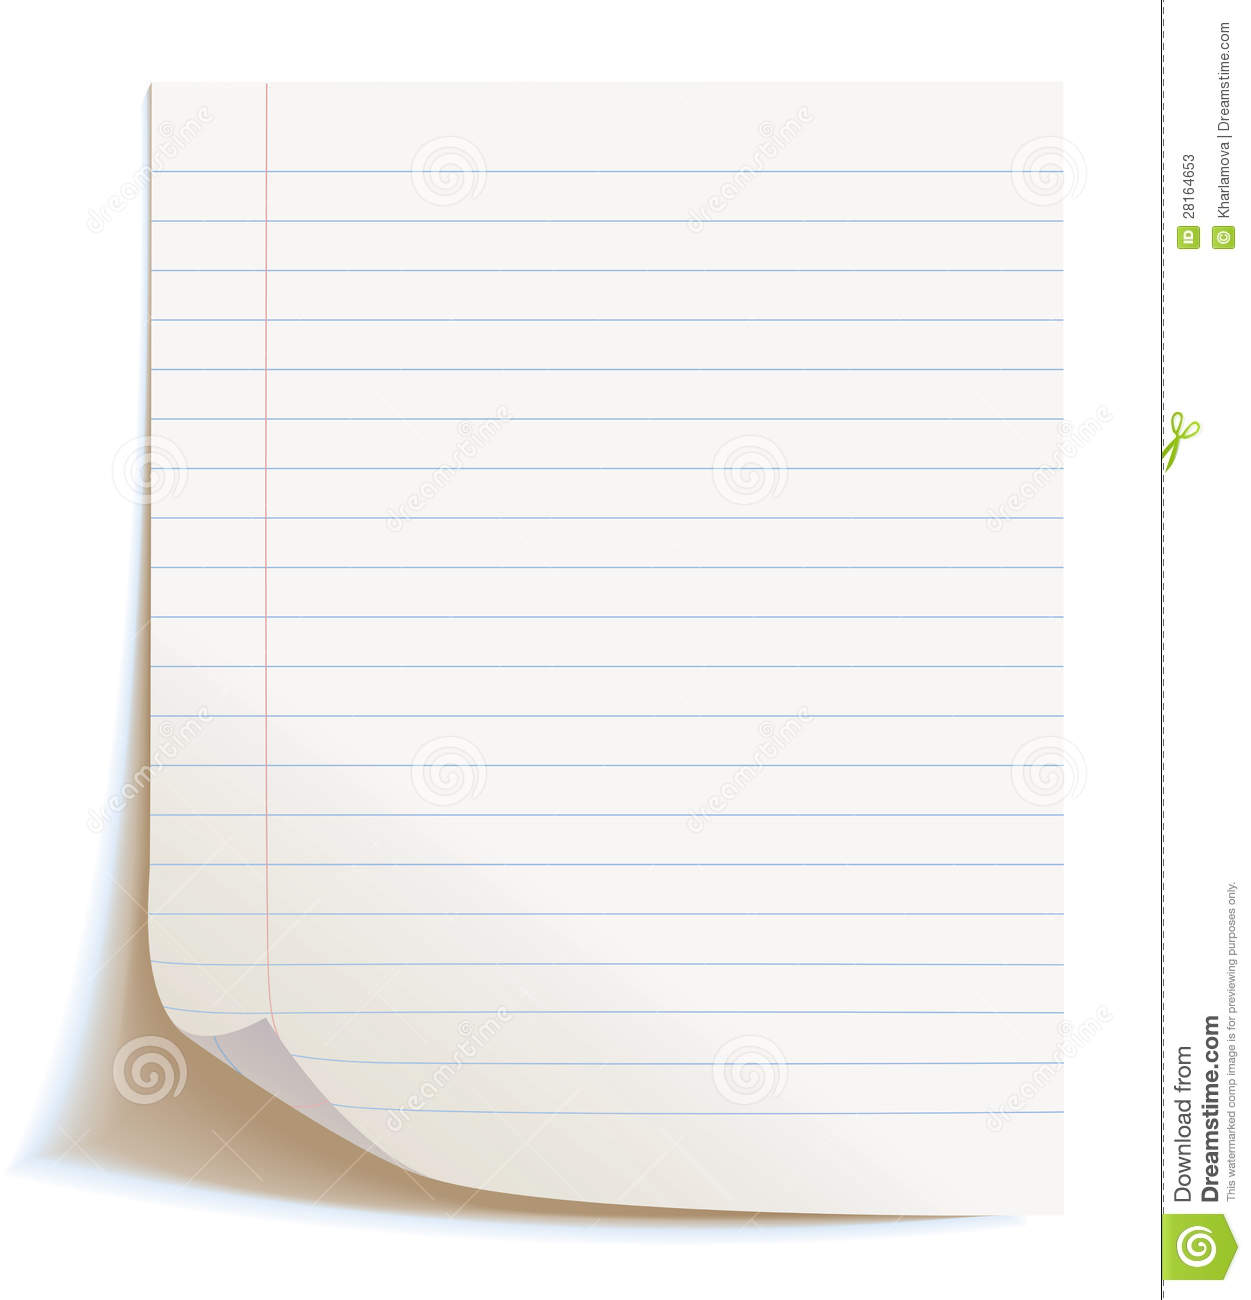 Blank Worksheet Exercise Book Stock Photos